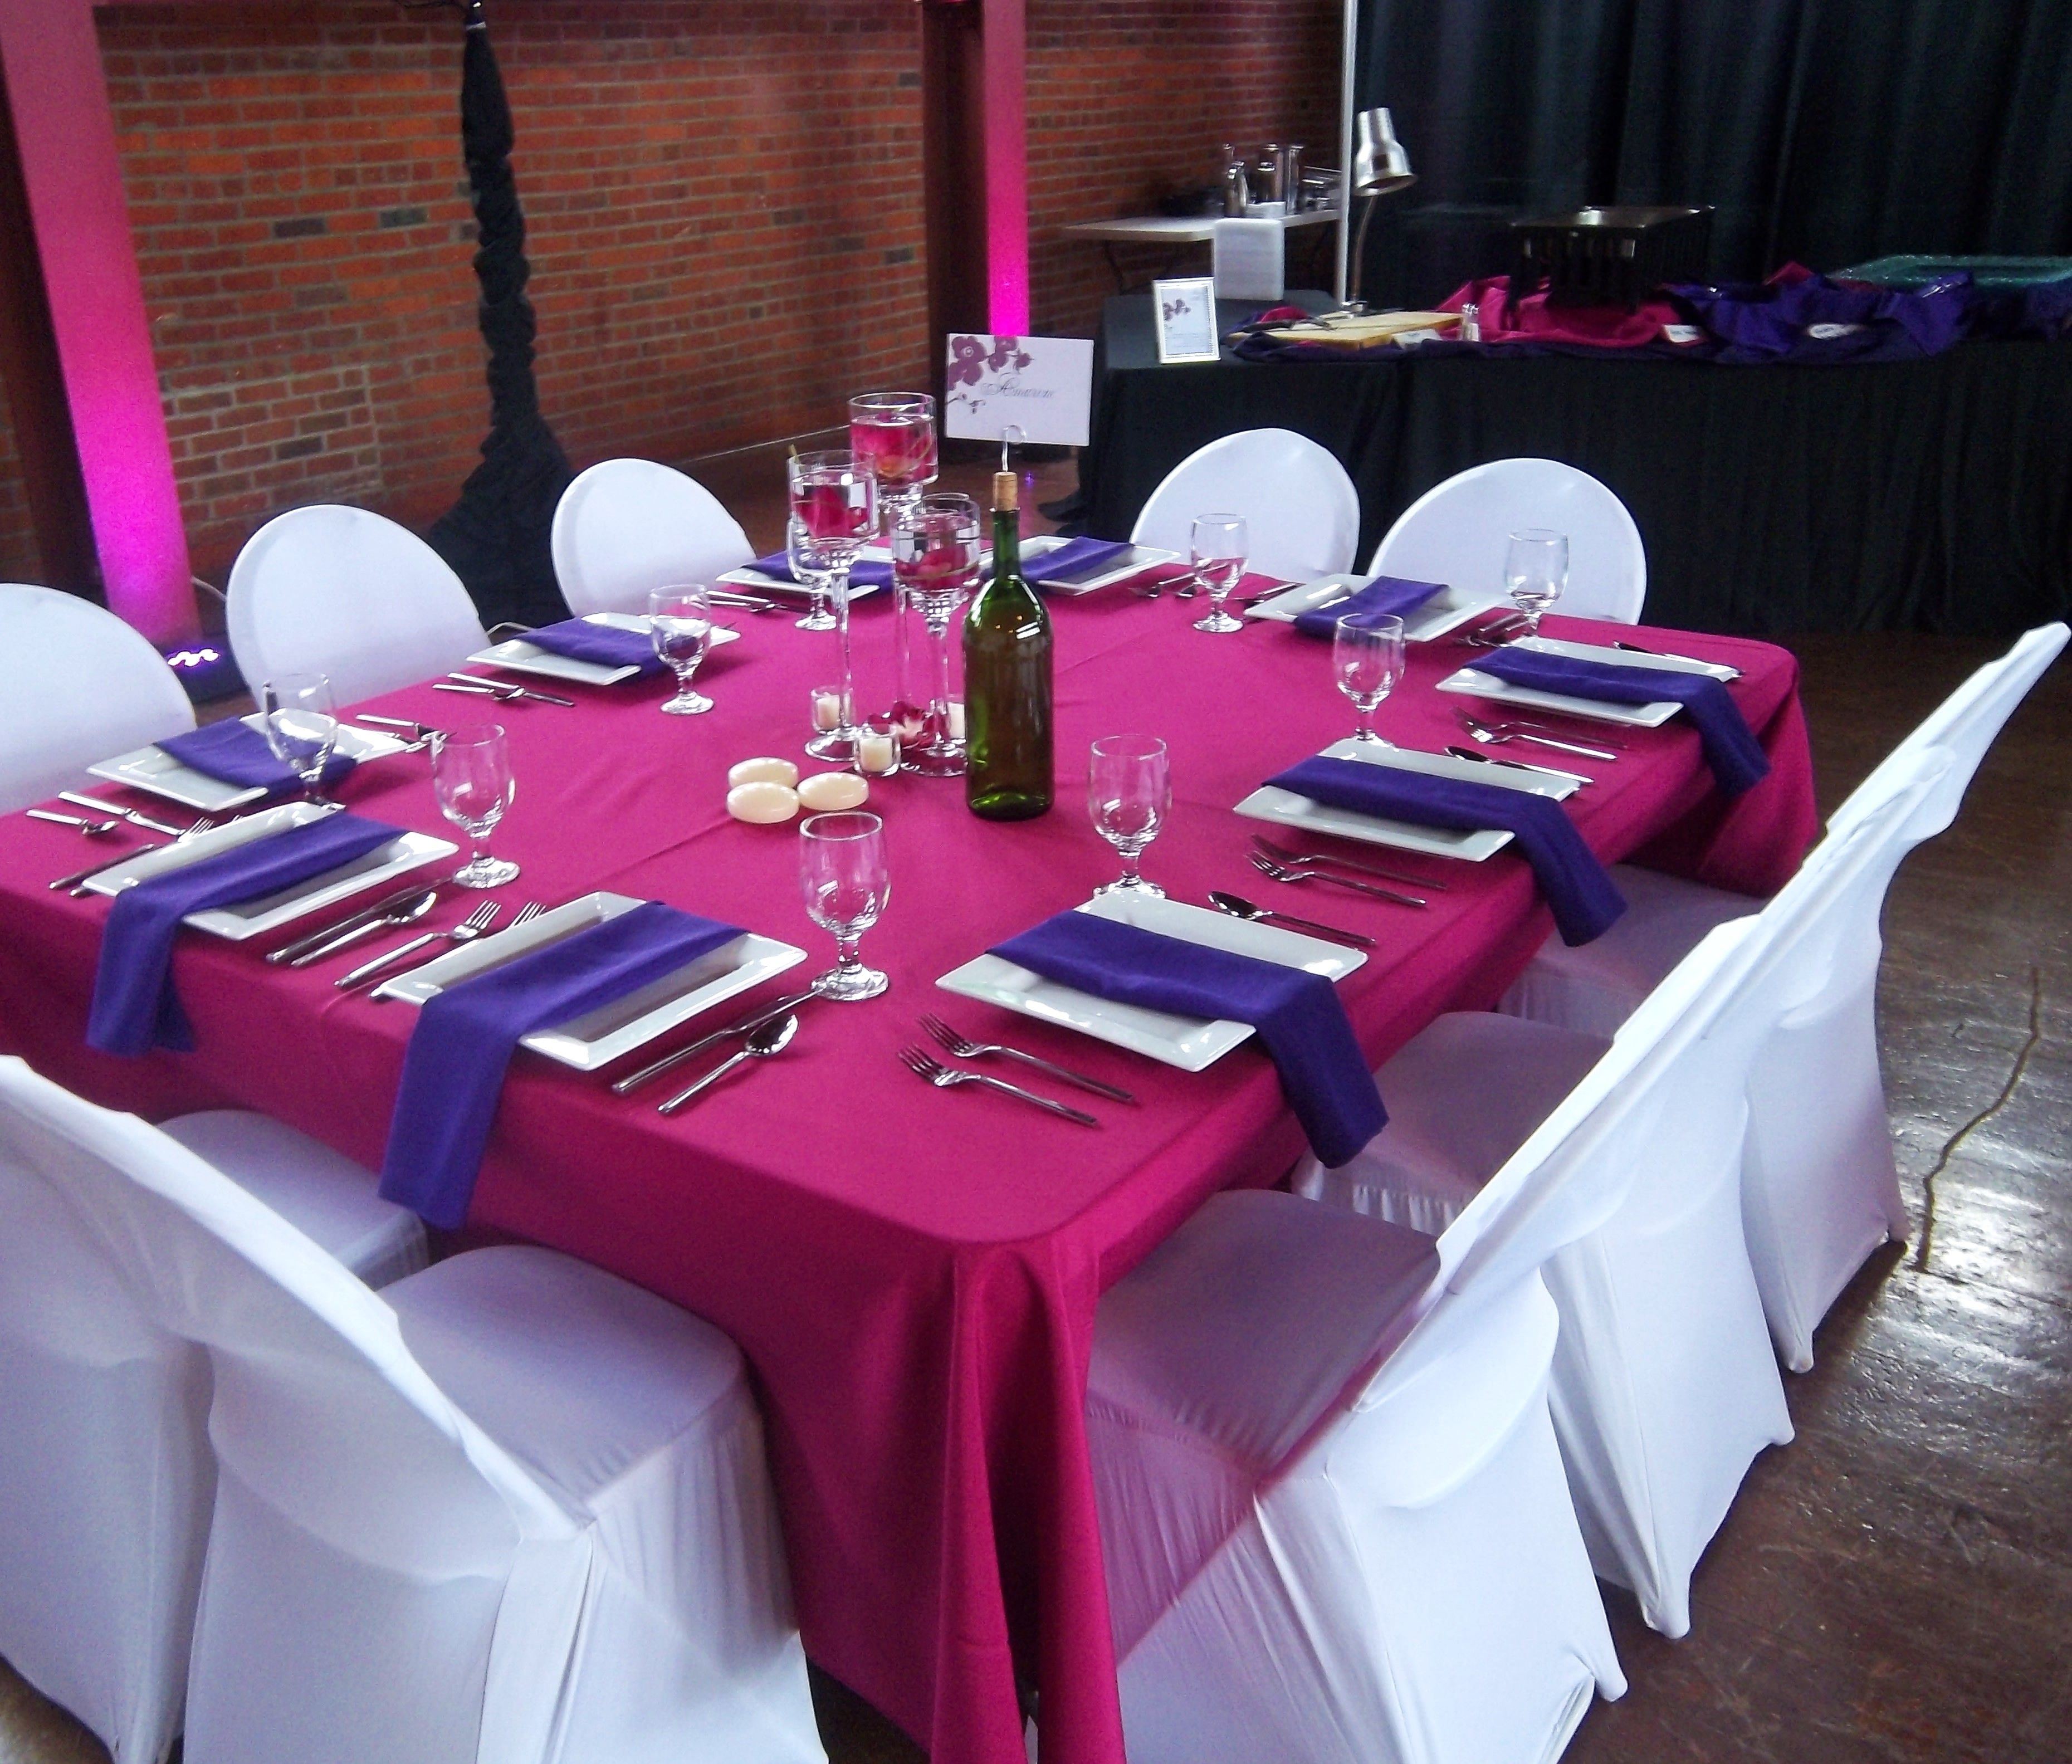 long table setup wedding reception%0A Fuchsia  u     purple reception decor with wine bottle centerpiece and spandex  chair covers http      Formal Table SettingsTable Setting WeddingOutdoor  Wedding